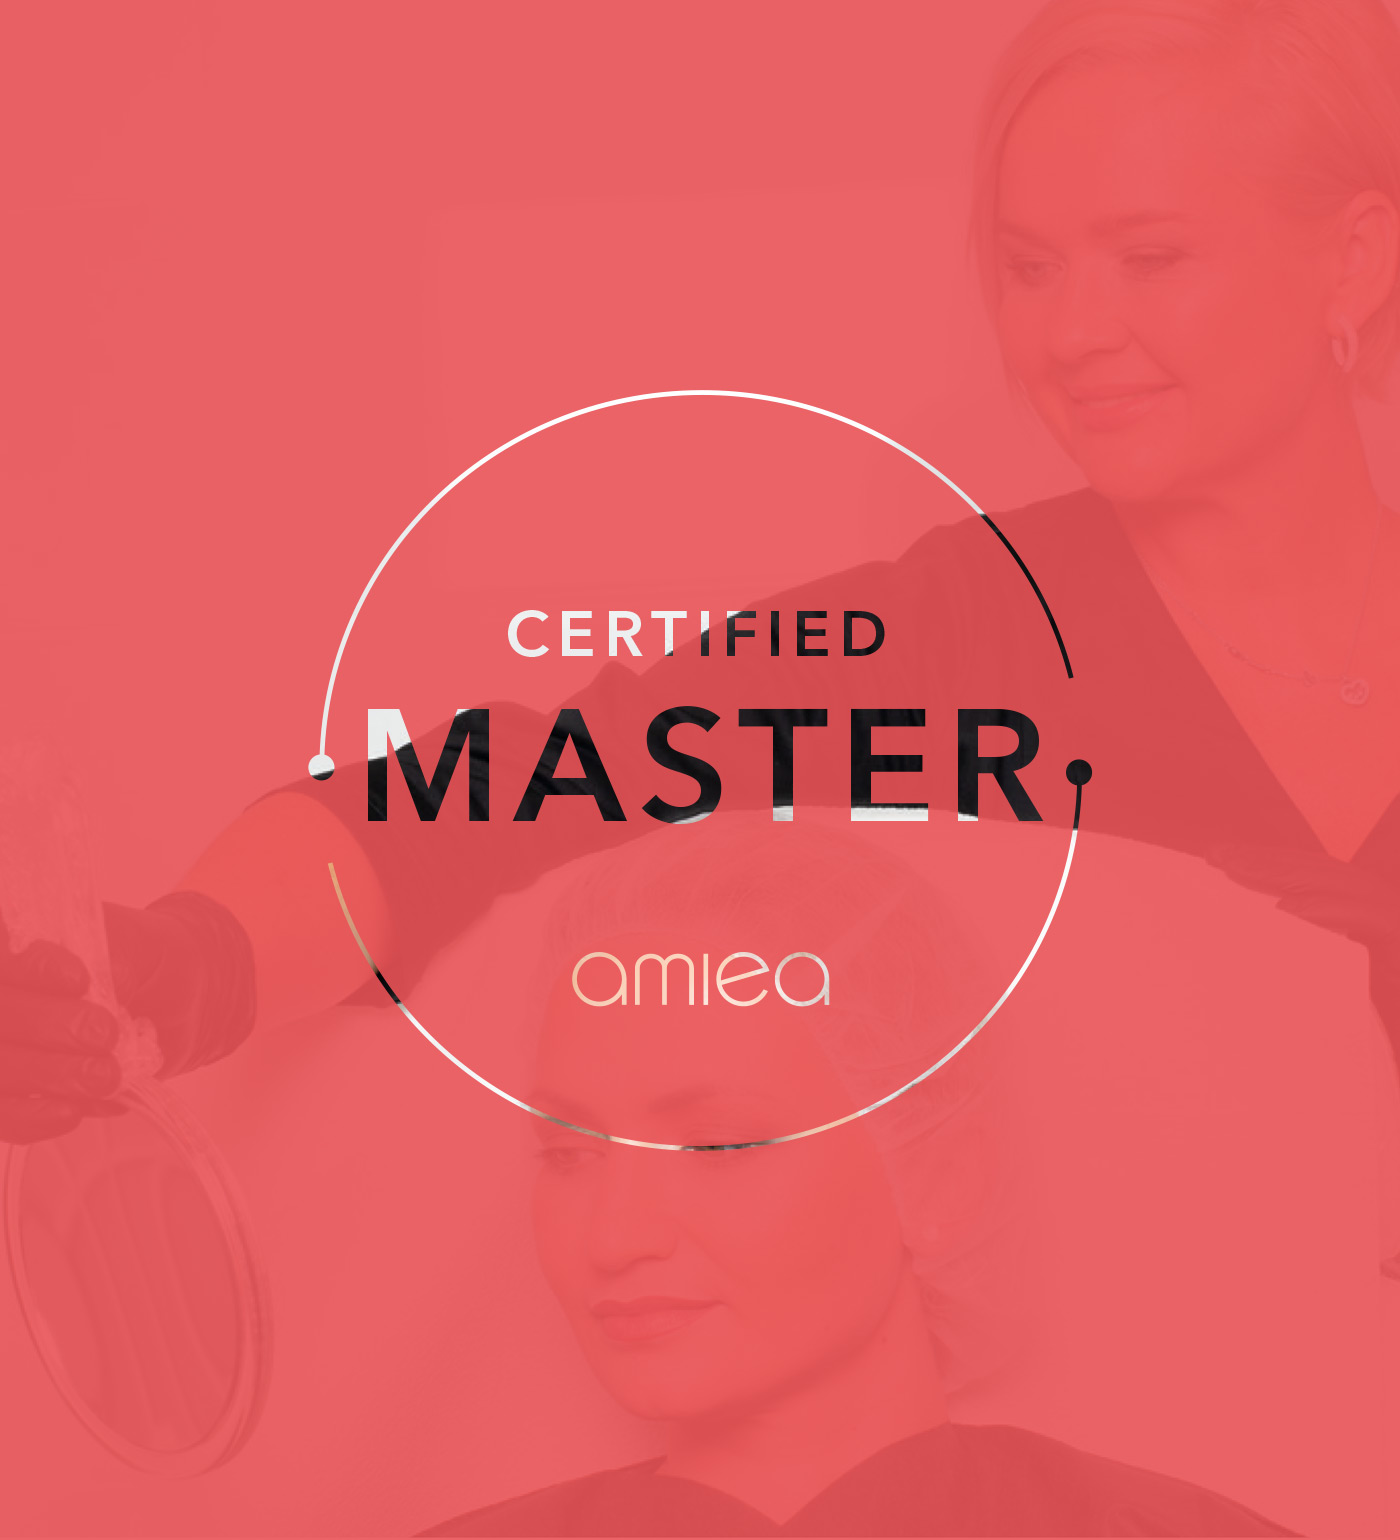 Logo of amiea certified Master on red background